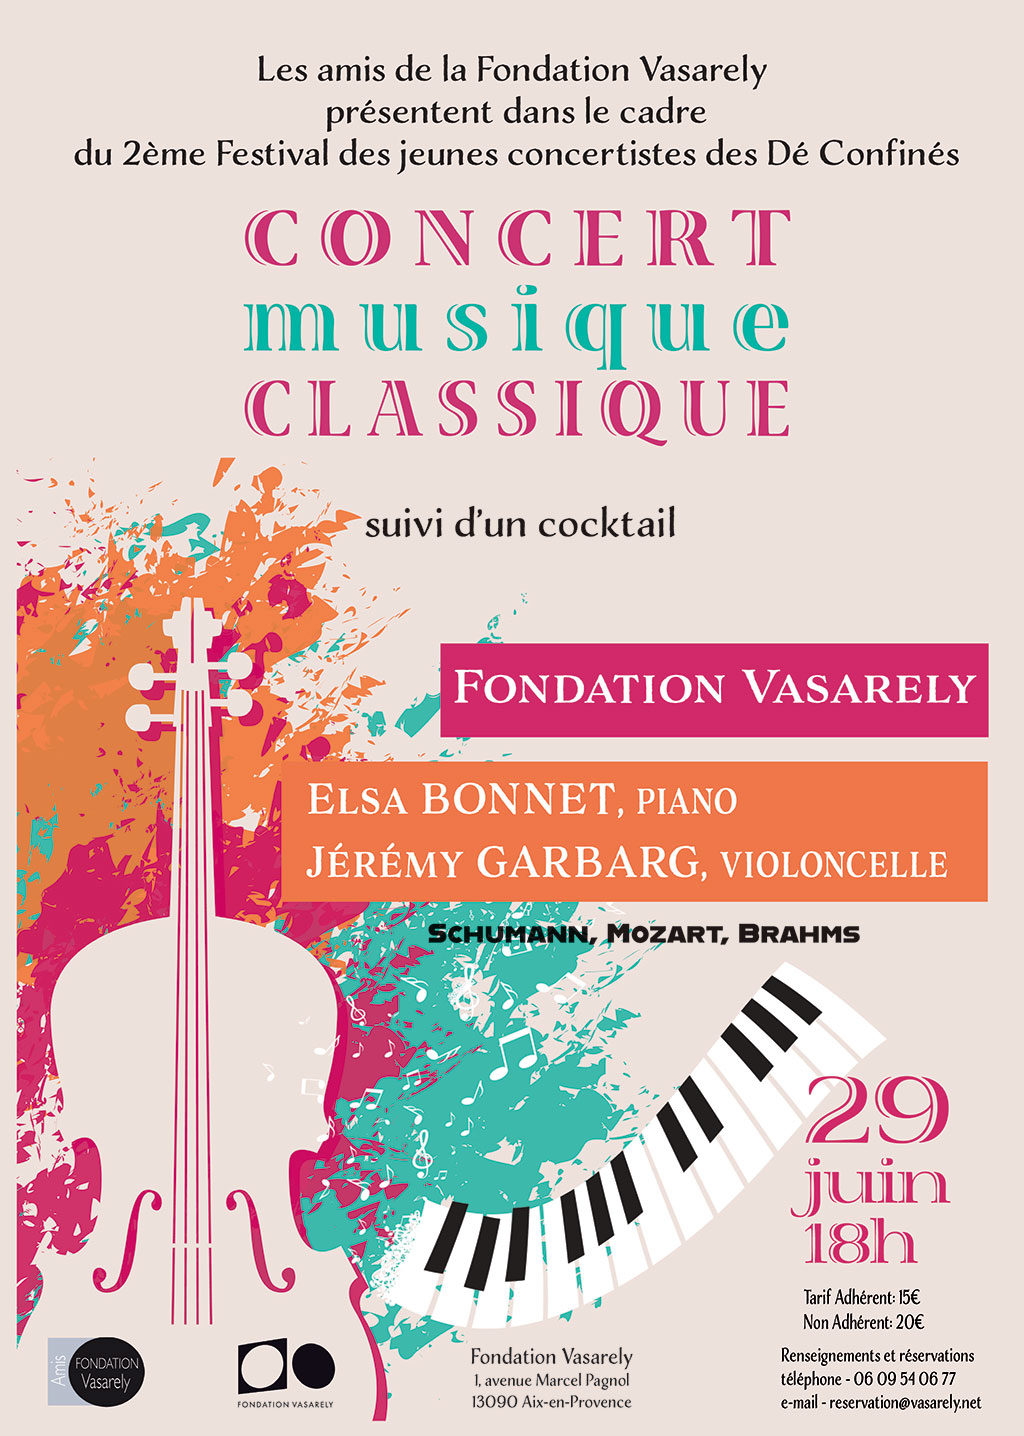 Classical music concert, June 29th at 6:00pm